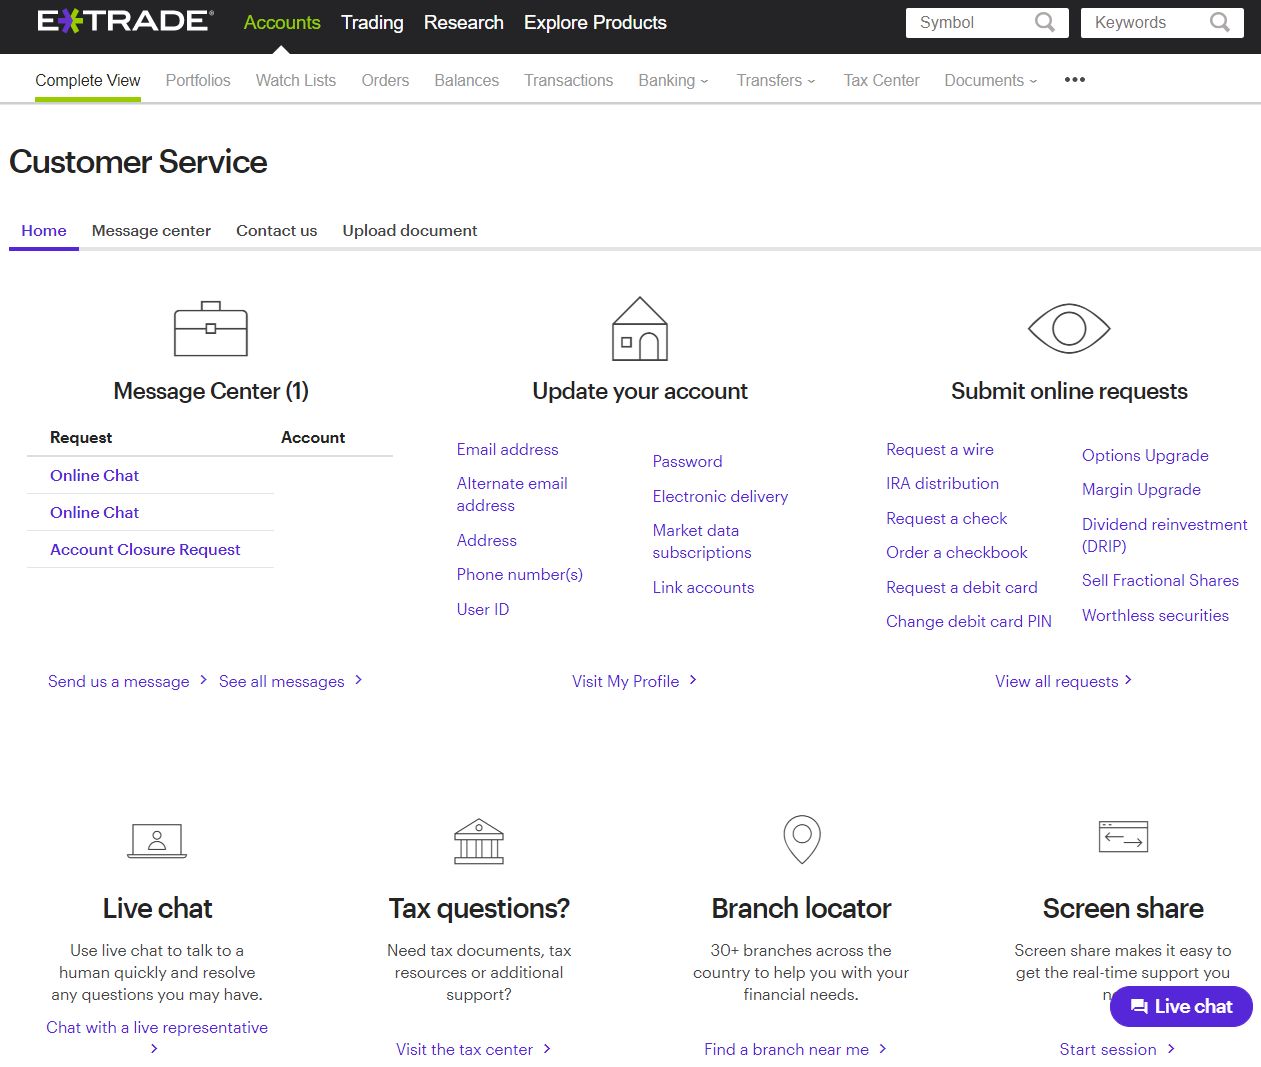 Etrade Customers review